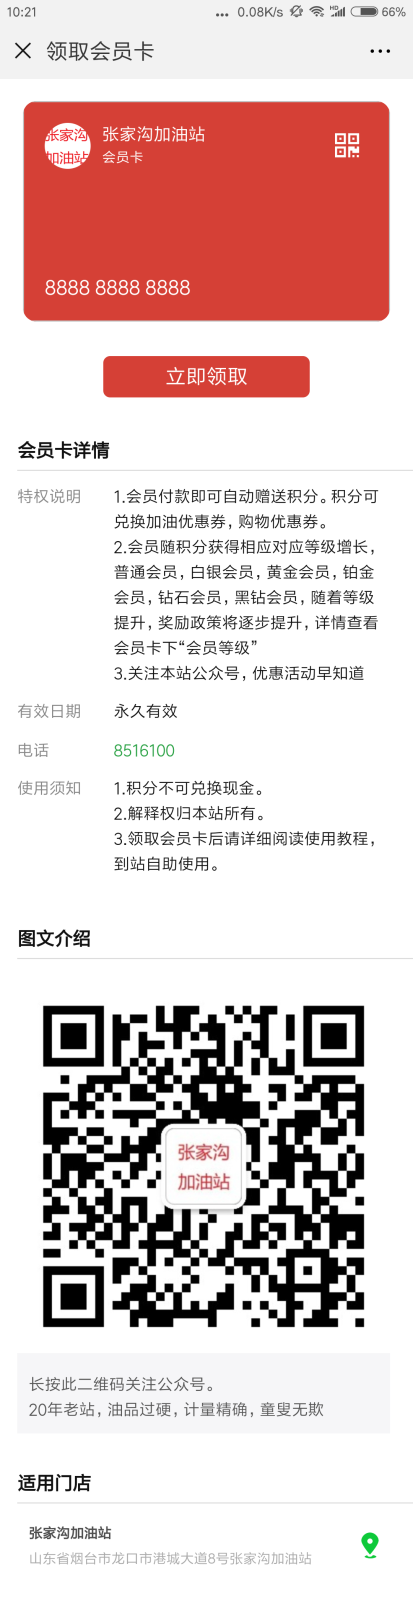 Screenshot_2018-08-23-10-21-12-770_com.tencent.mm.png